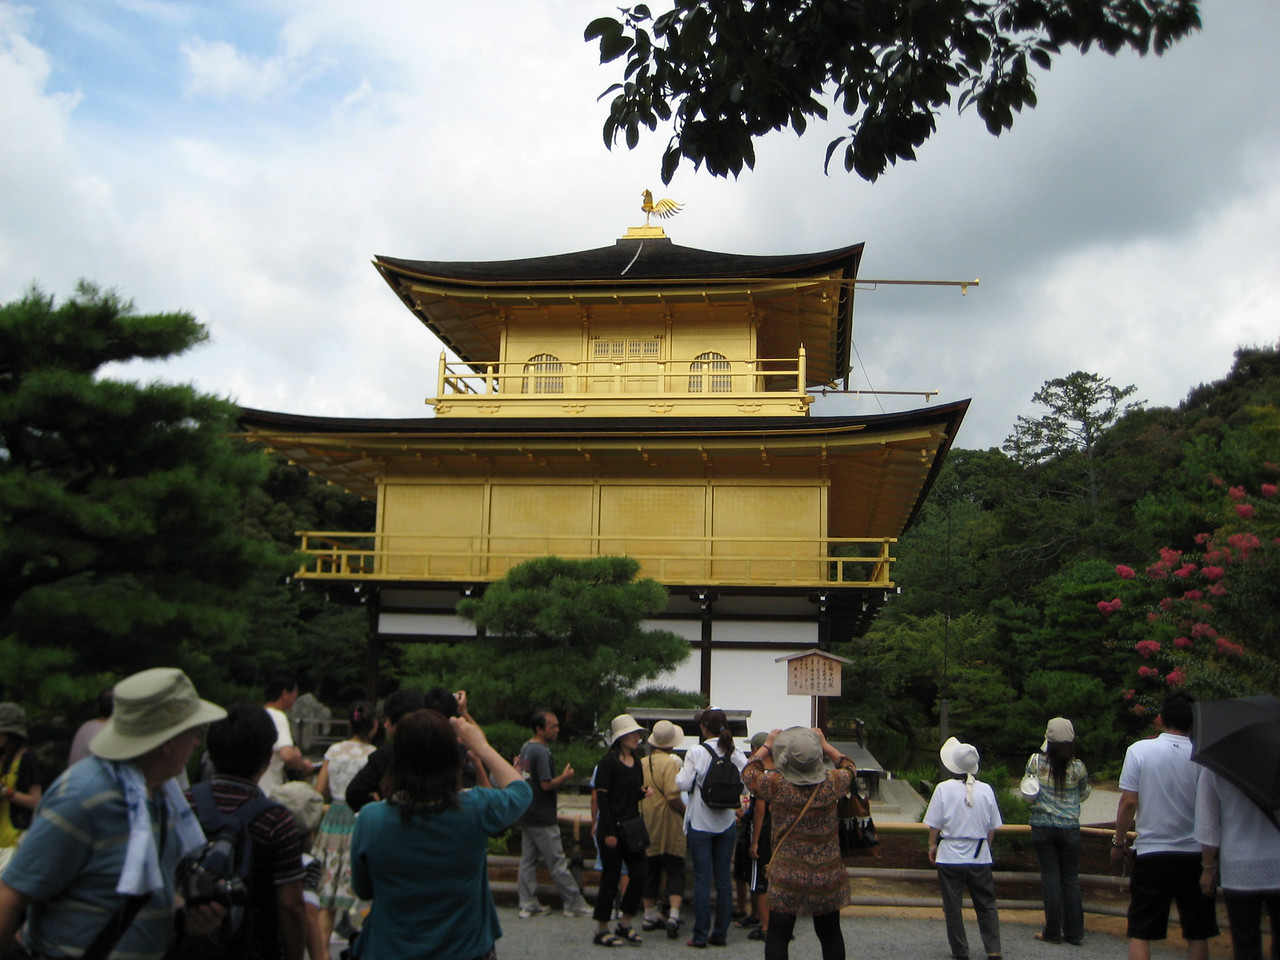 Following the death of Yoshimitsu, the site was rededicated as a Zen temple by his son in accordance with his father's wishes.